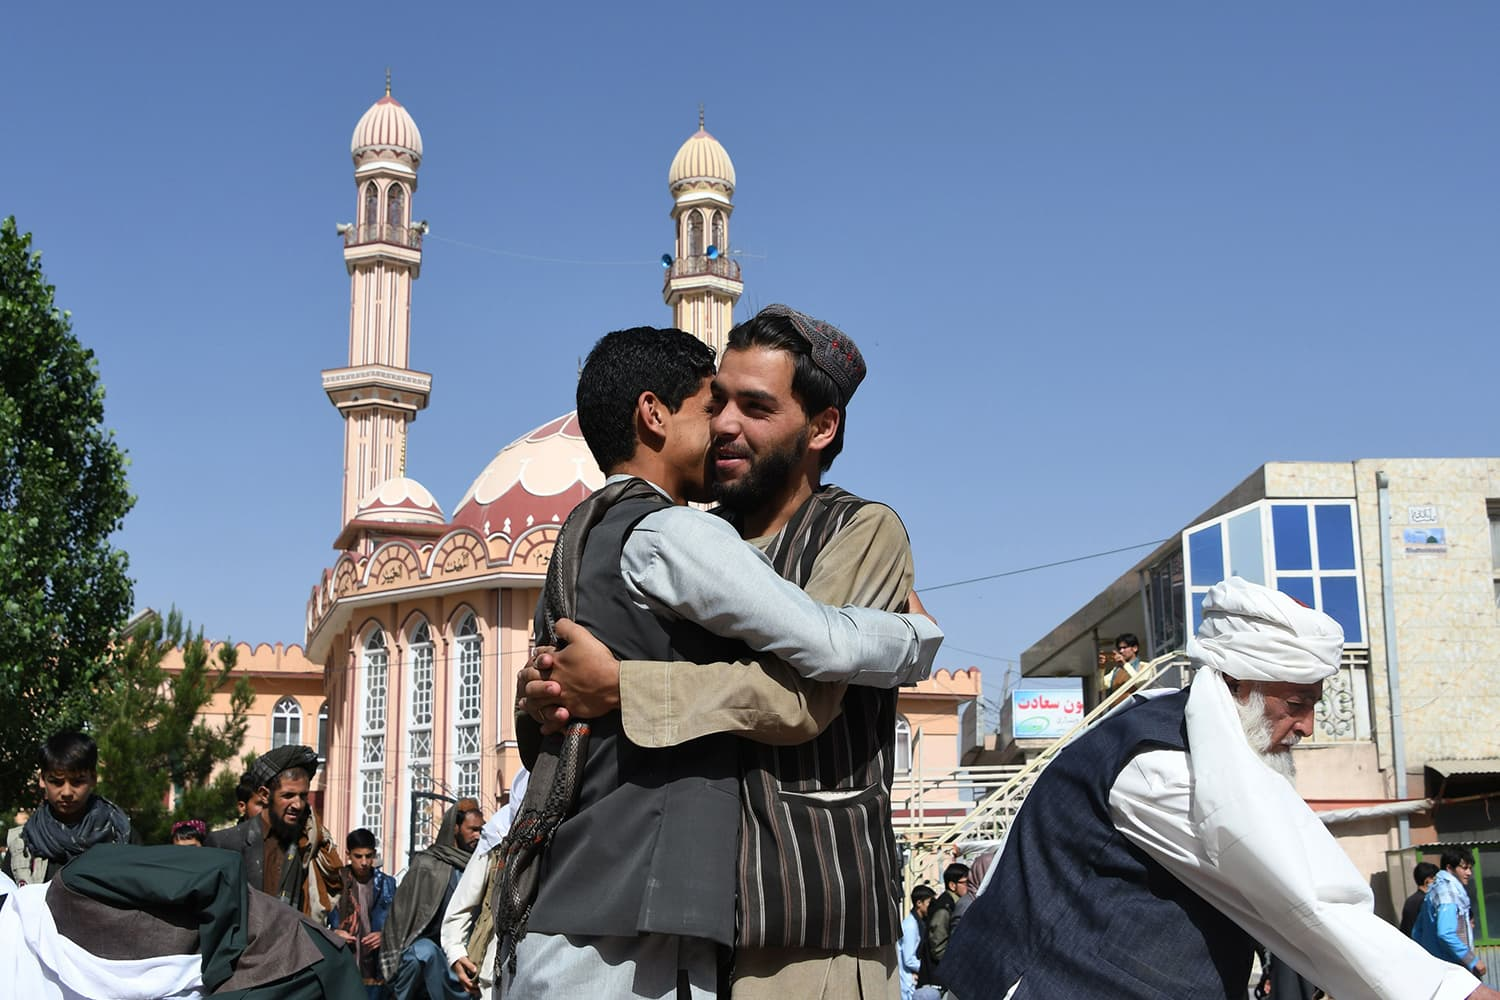 Afghan residents greet each other after Eid prayers in Ghani. — AFP